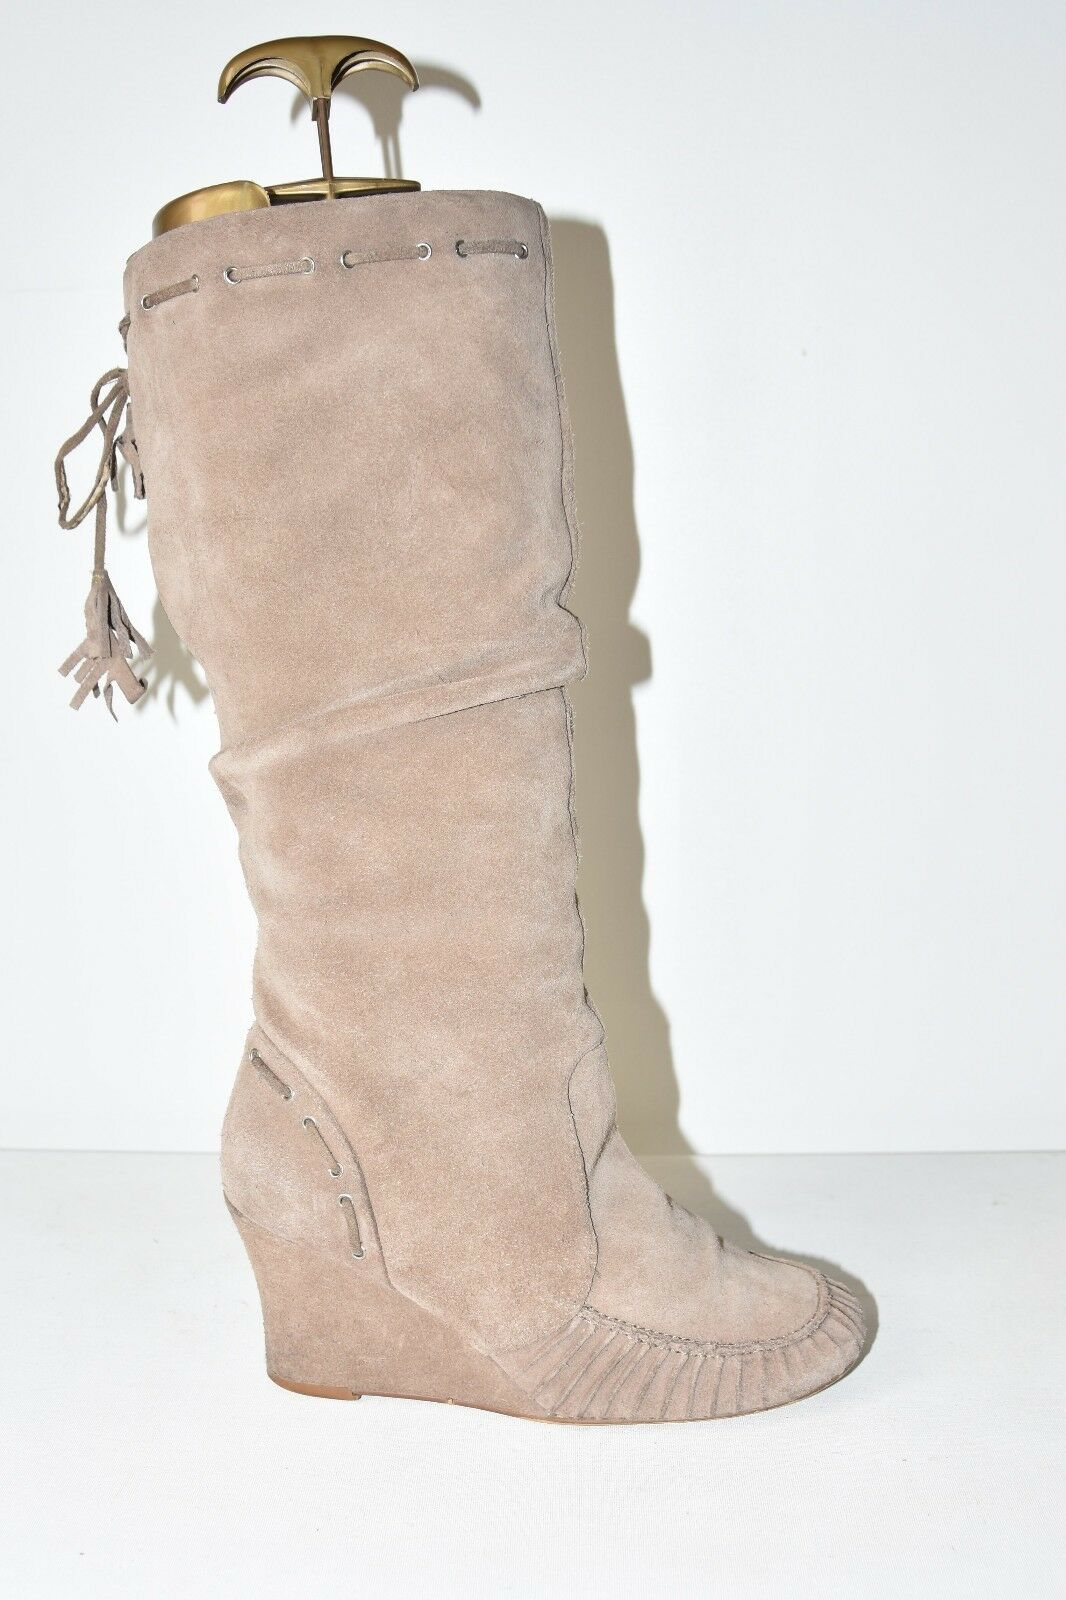 Beige Real  Leather THEME Zip Knee High Wedge Mid Heel Women's Boots Size 5 38